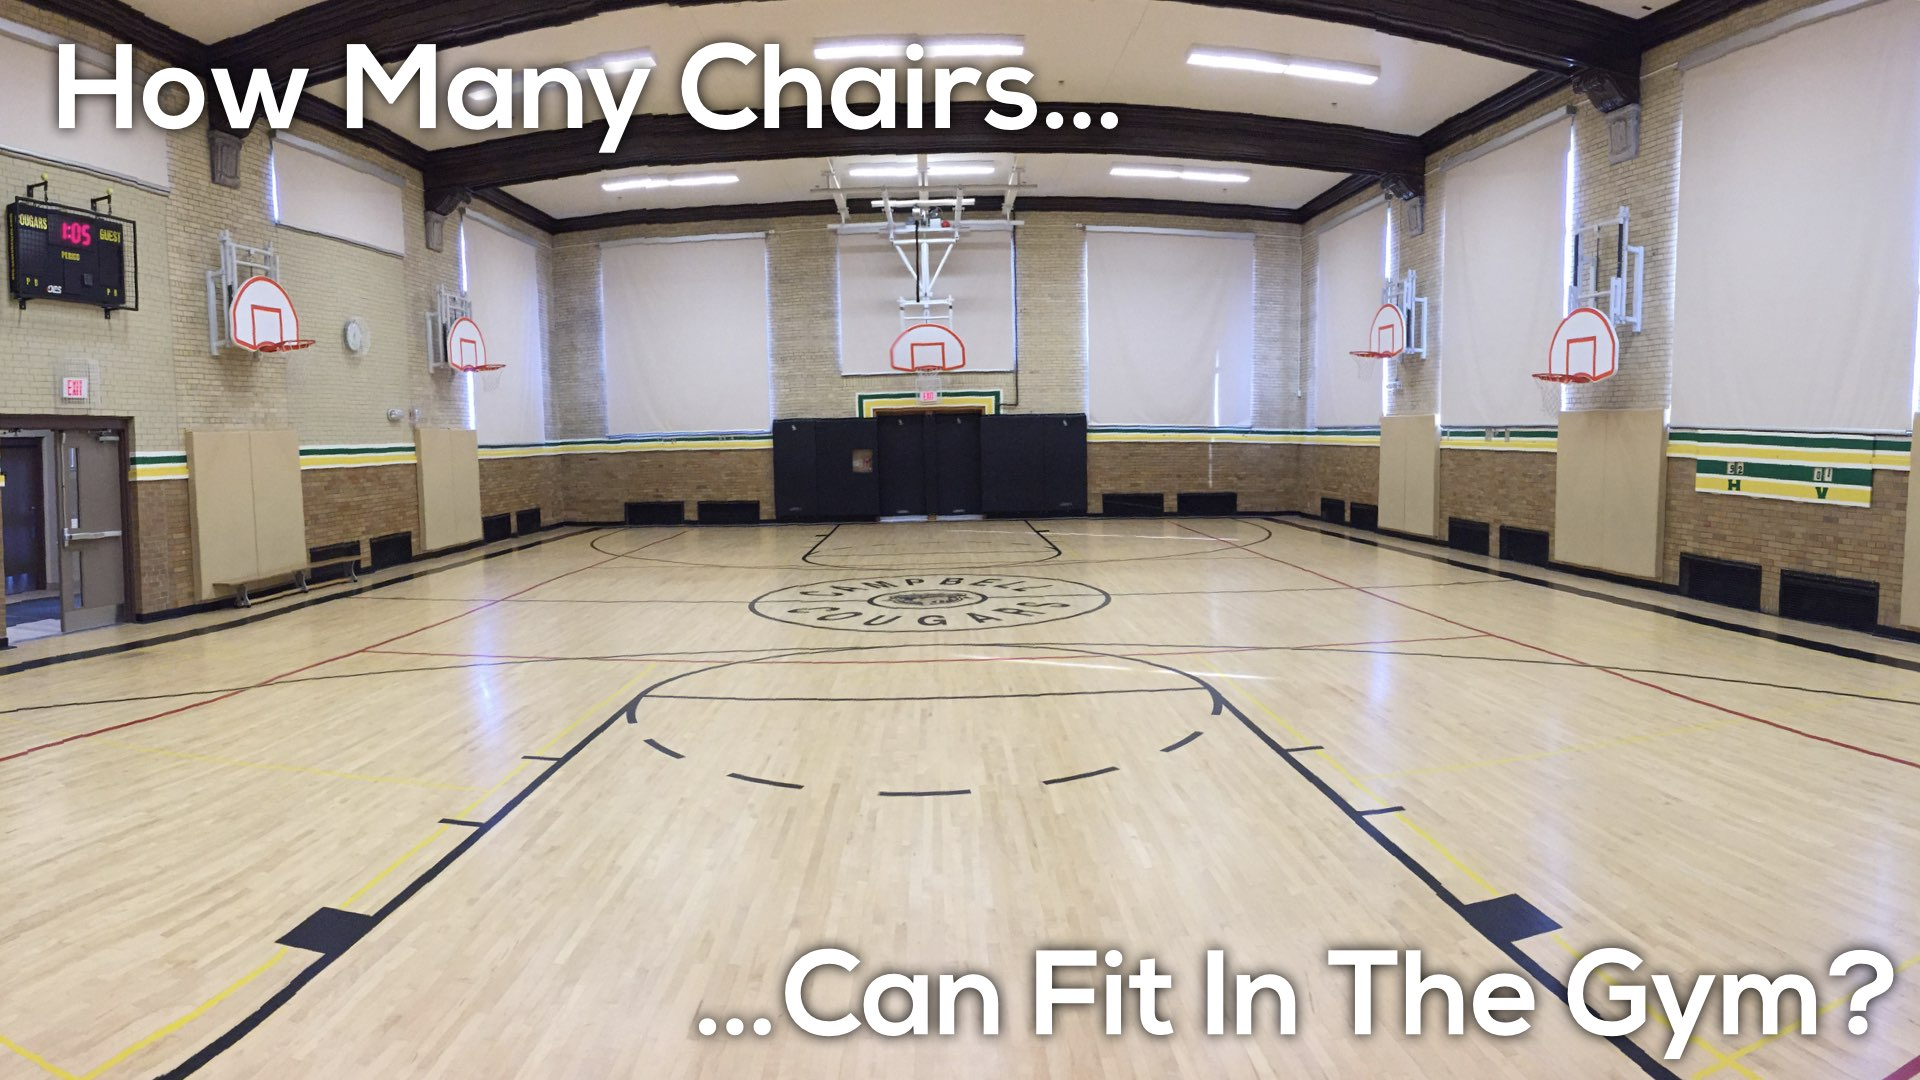 Graduation Day Version 2.008 how many chairs can fit in the gym